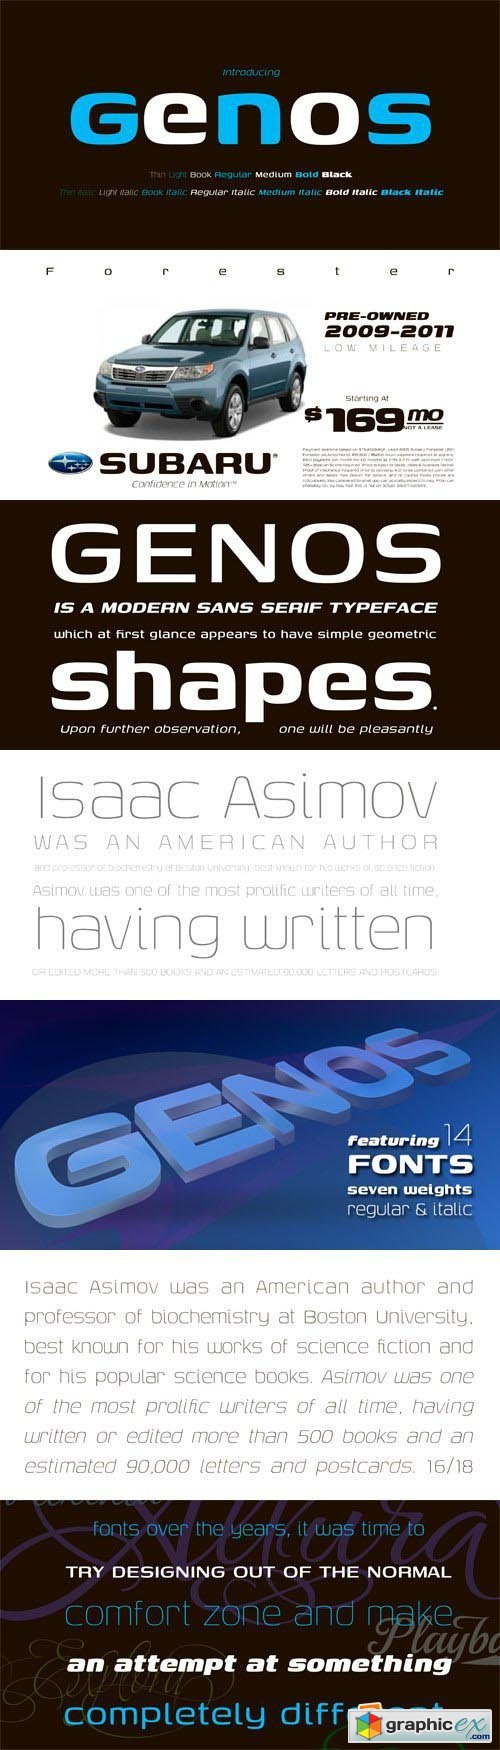 Genos Font Family - 14 Fonts for $80